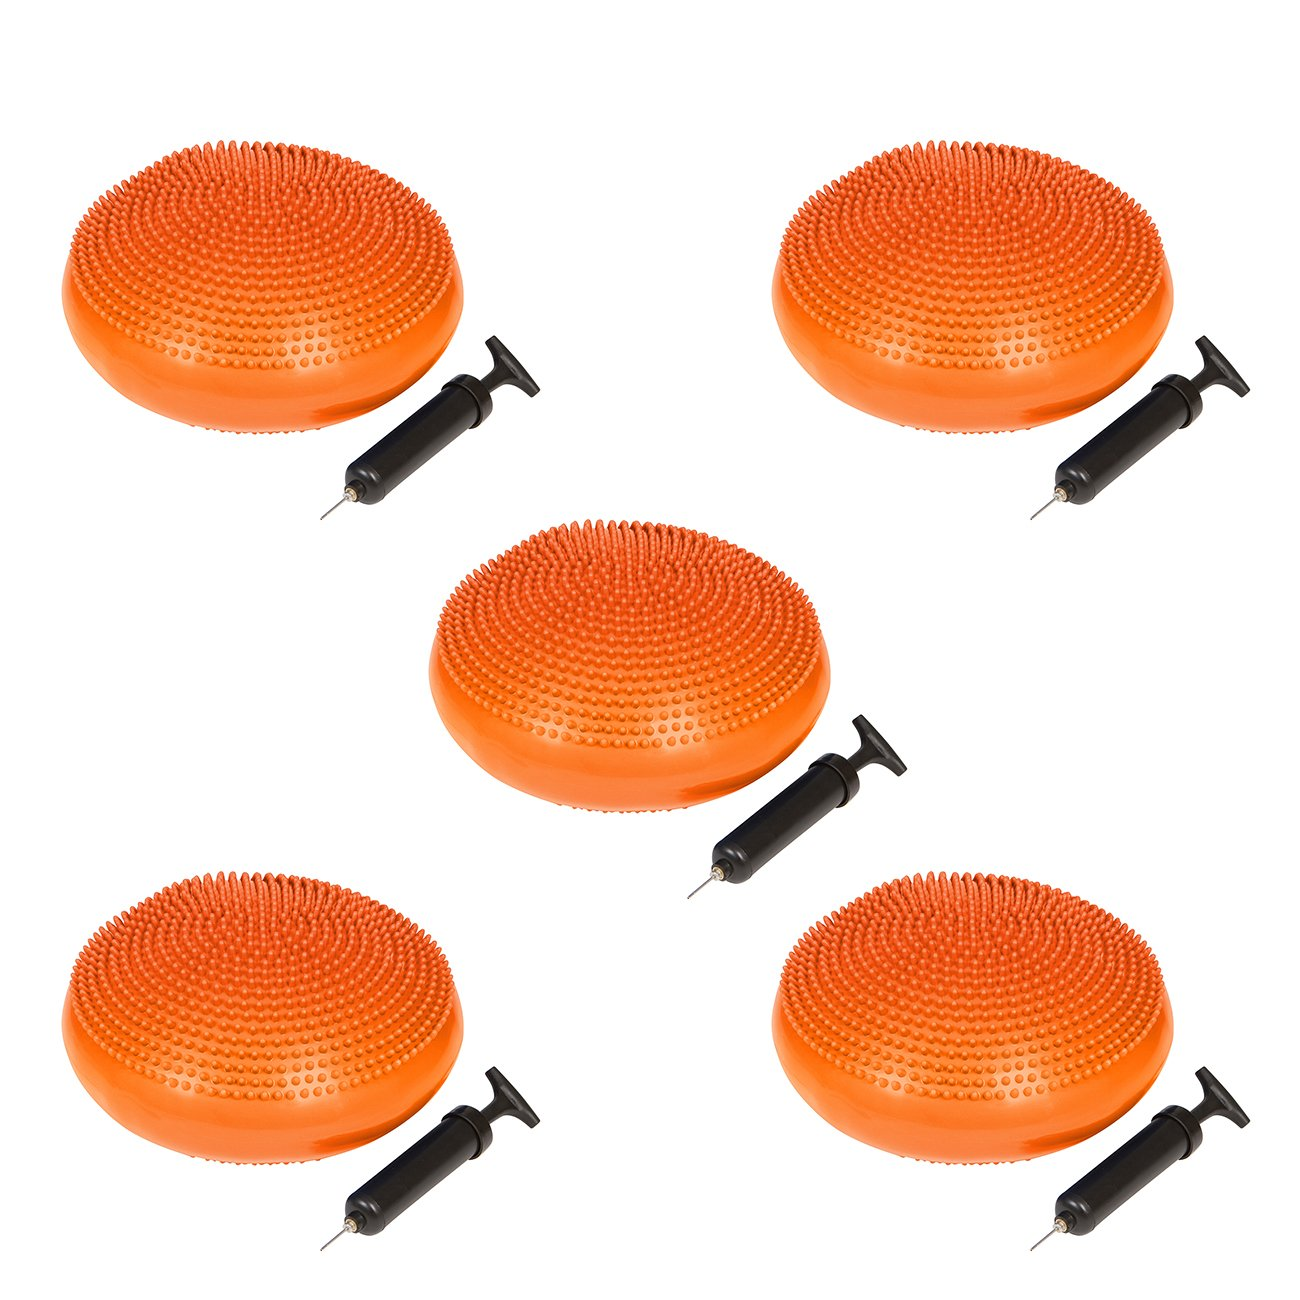 Trademark Innovations PVC Fitness and Balance Disc - 13-Inch Diameter - Set of 5 - (Orange)